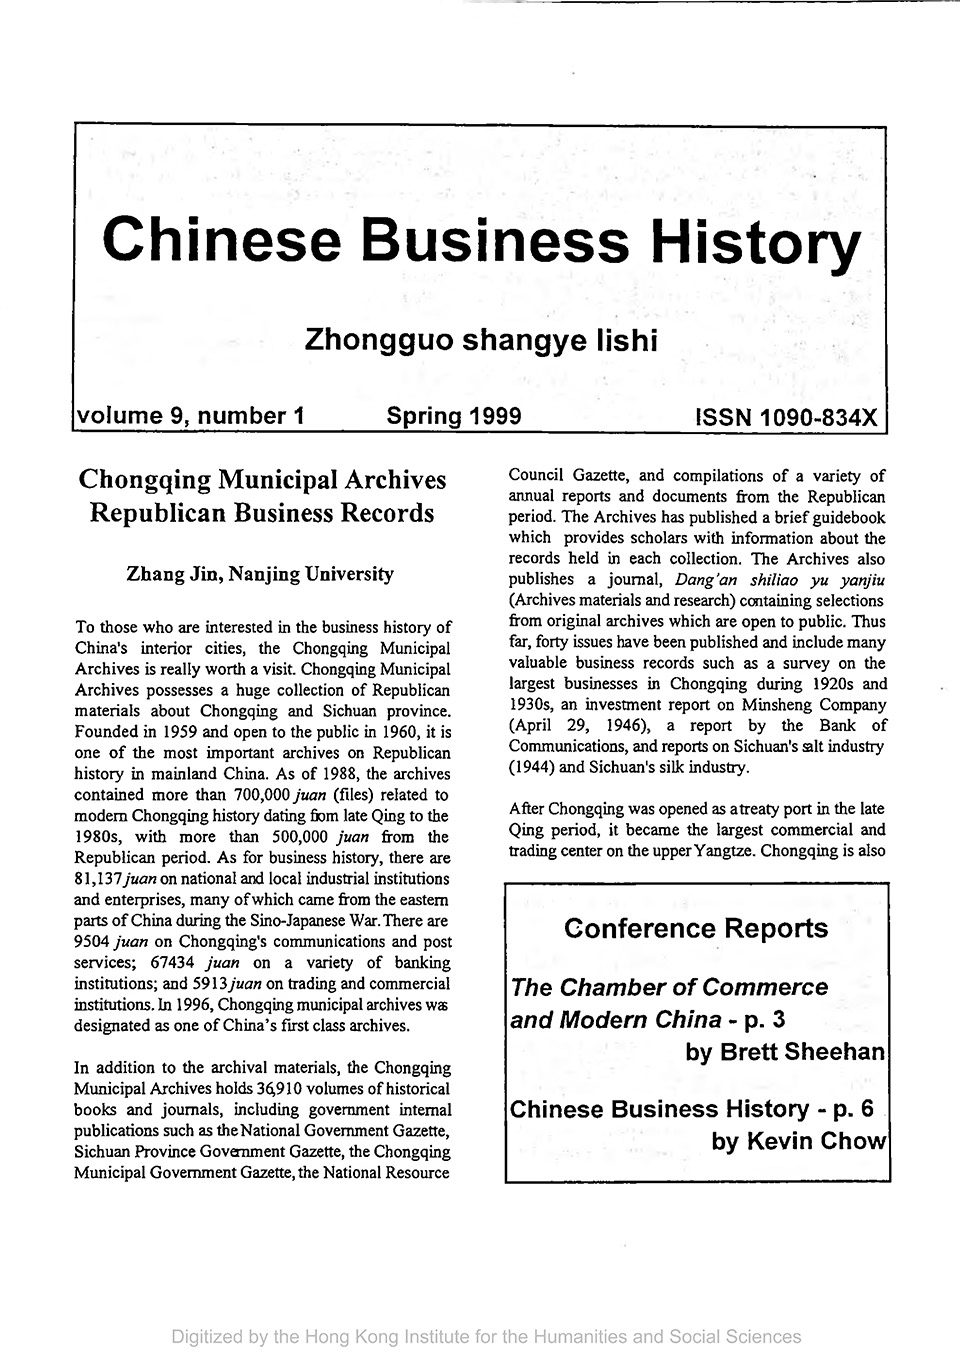 Cover of Chinese Business History Journal Volume 9, Number 1